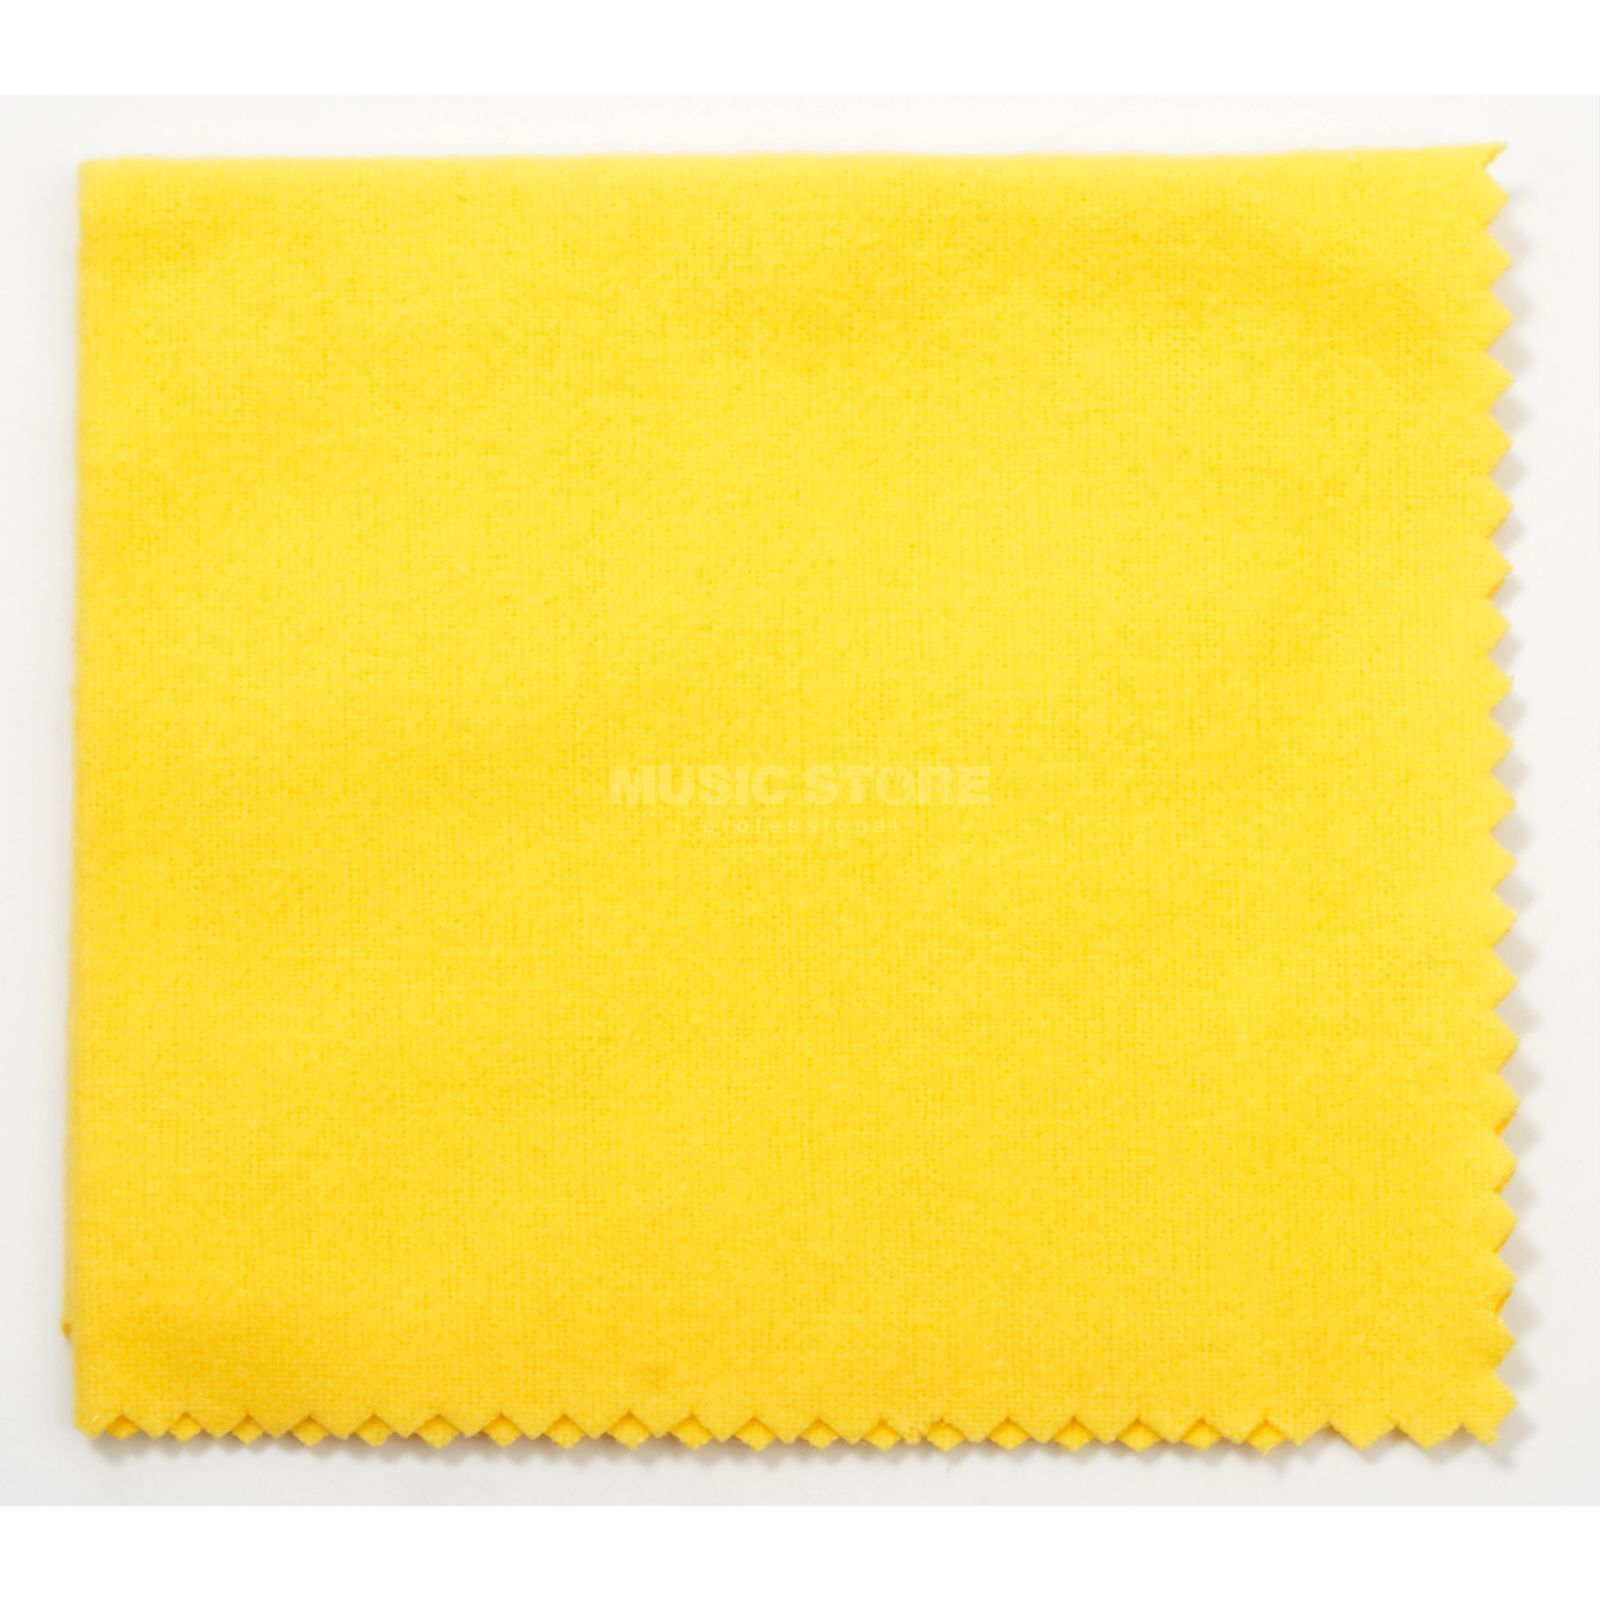 Yamaha Polishing Cloth Size S Yellow Product Image